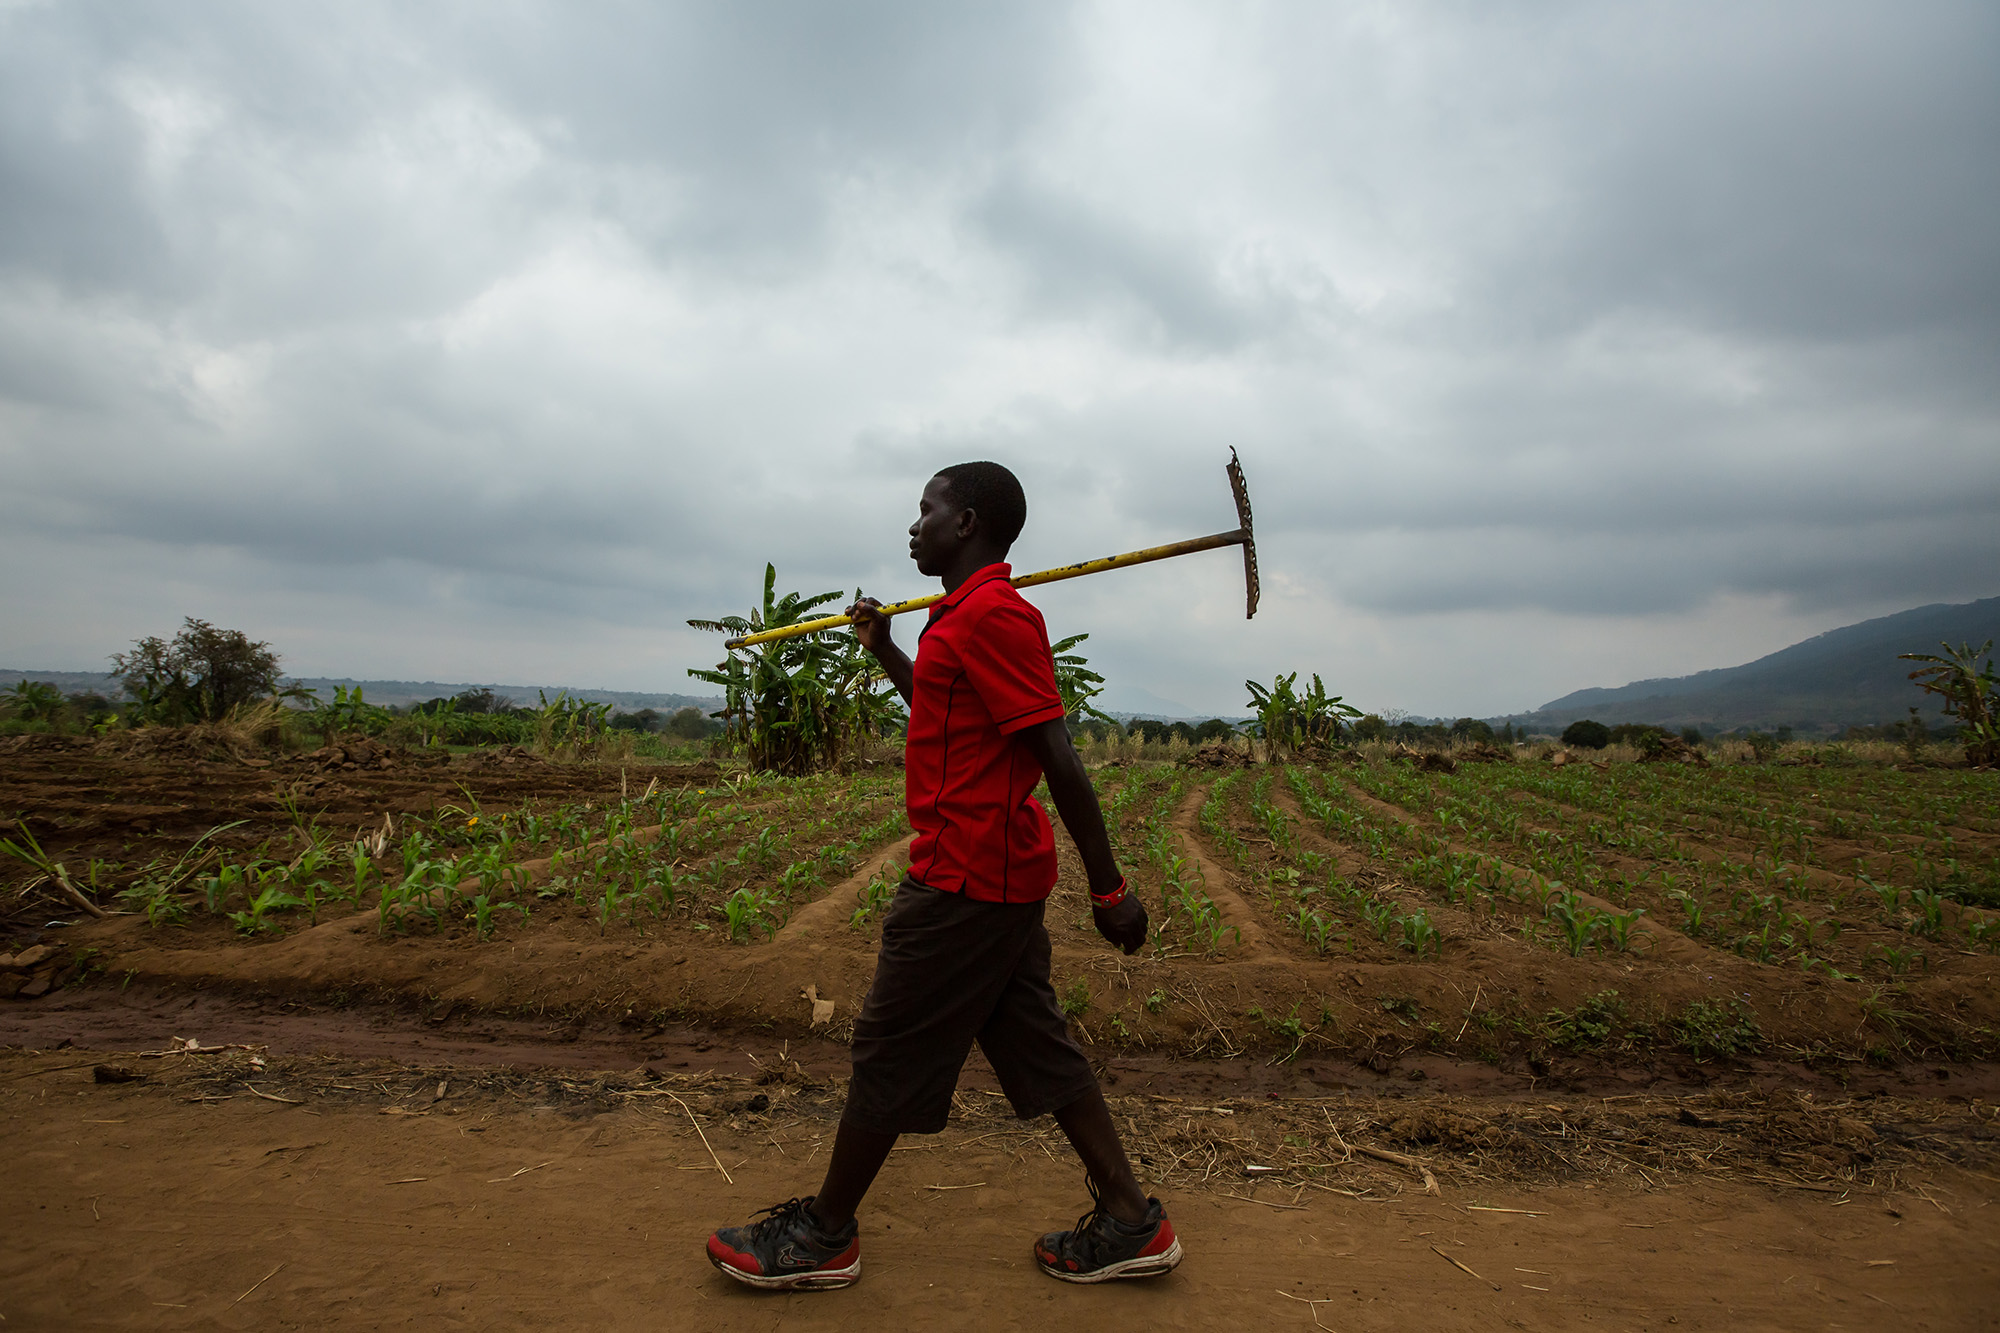 Wilfred walks from his home to work in the field.Photo by Morgana Wingard.